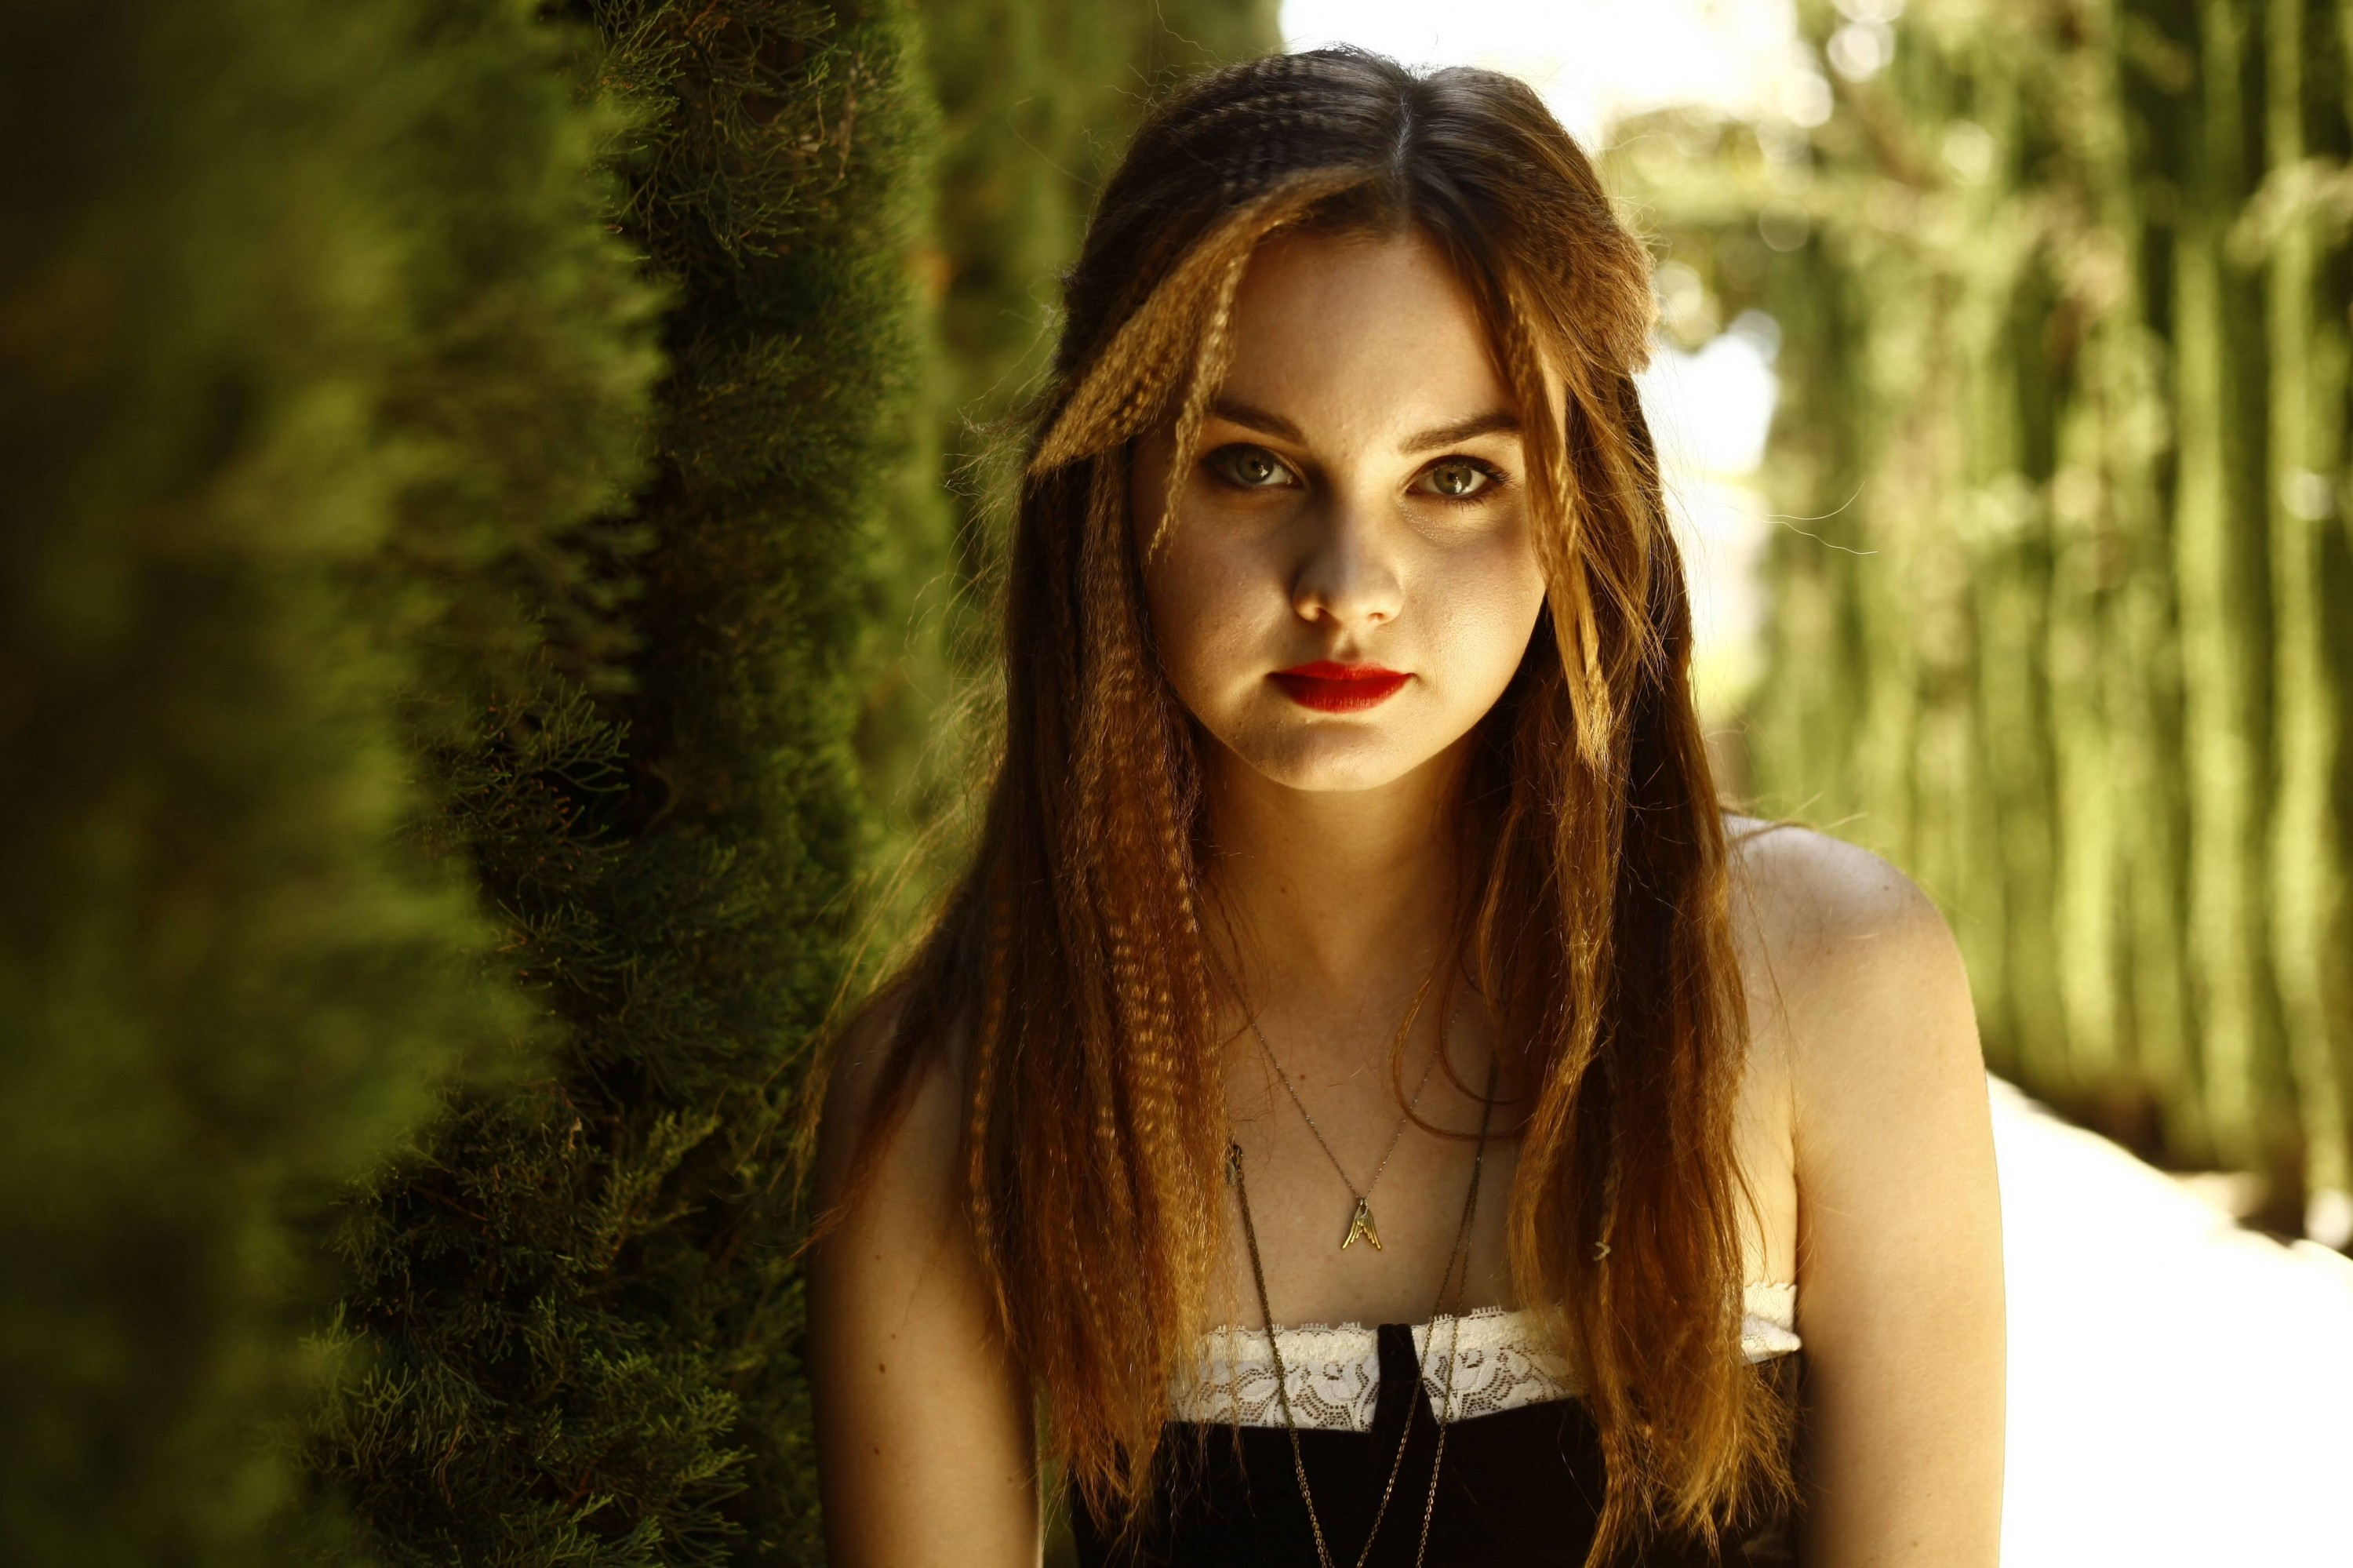 Liana Liberato: Bri Smith Photoshoot 2014 -28 - GotCeleb